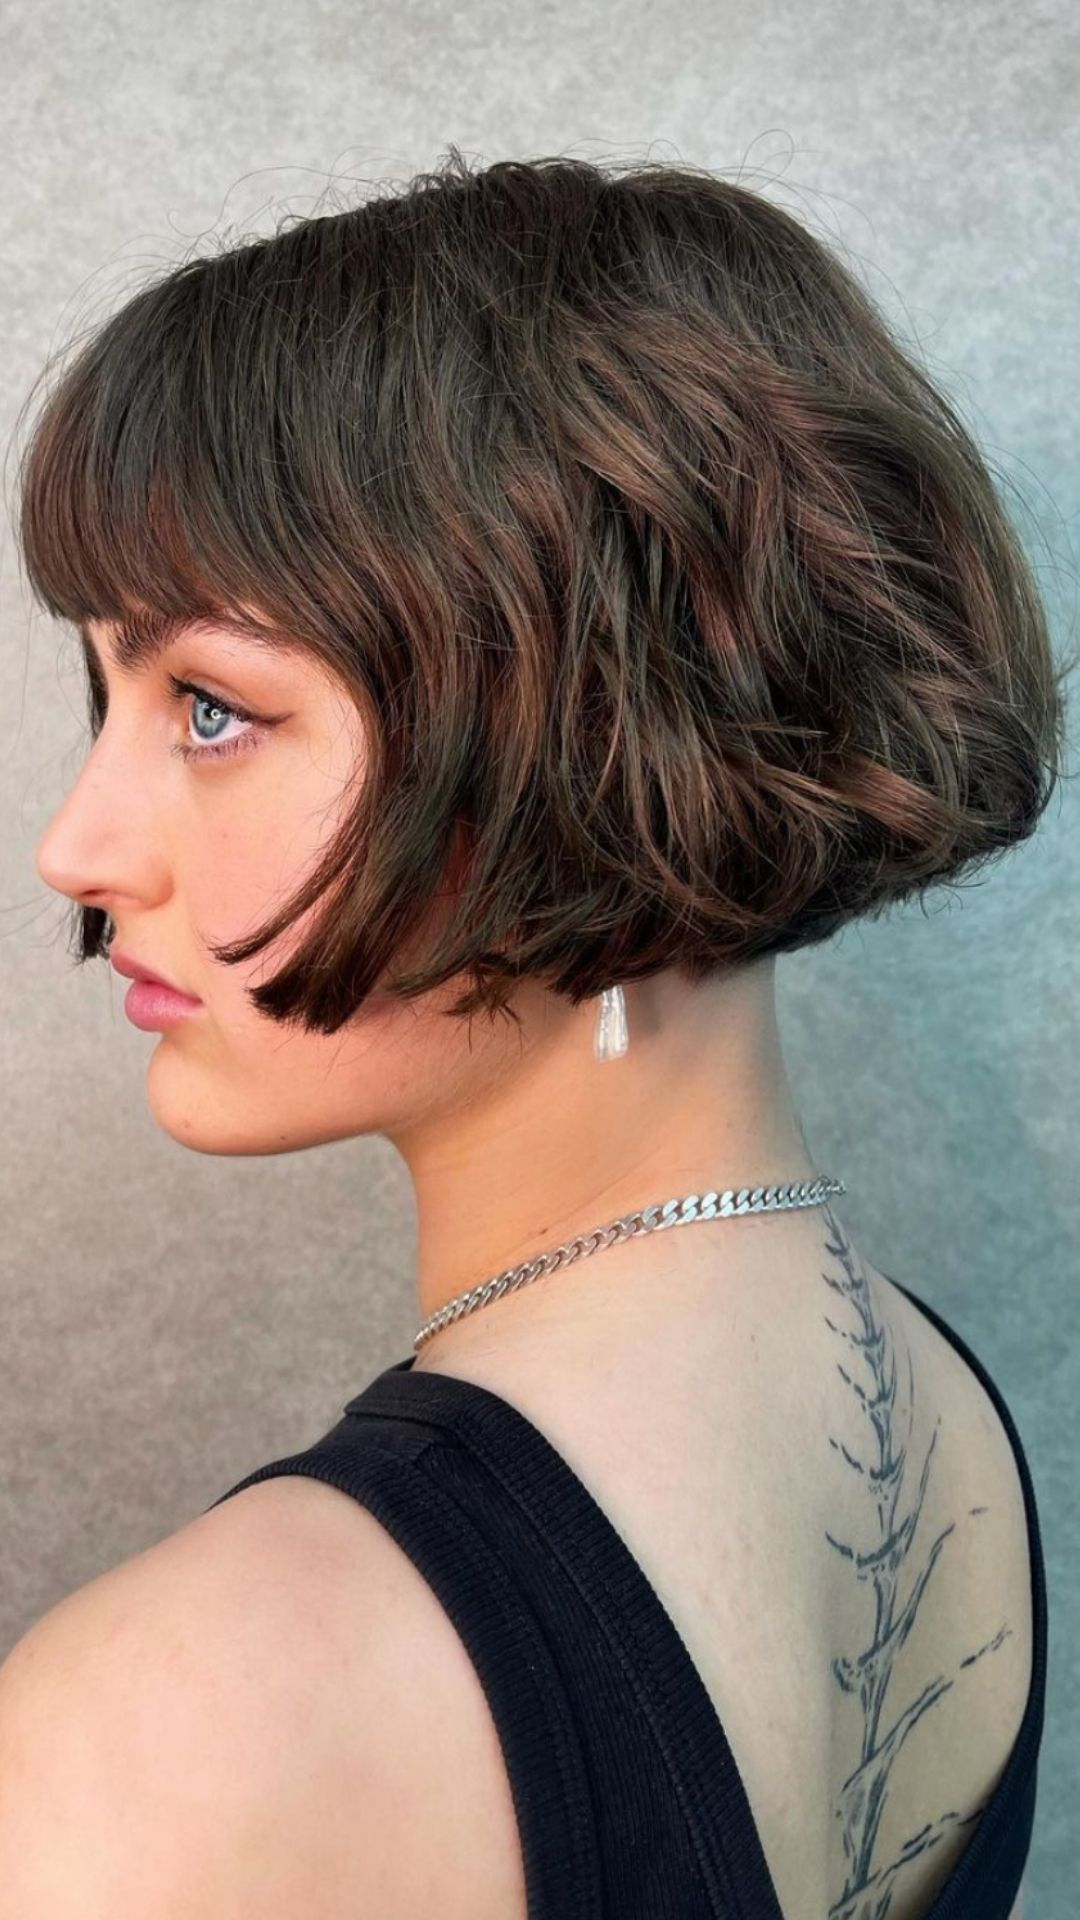 21 Astonishing French Bob Haircuts With fringe Ideas to try 2021